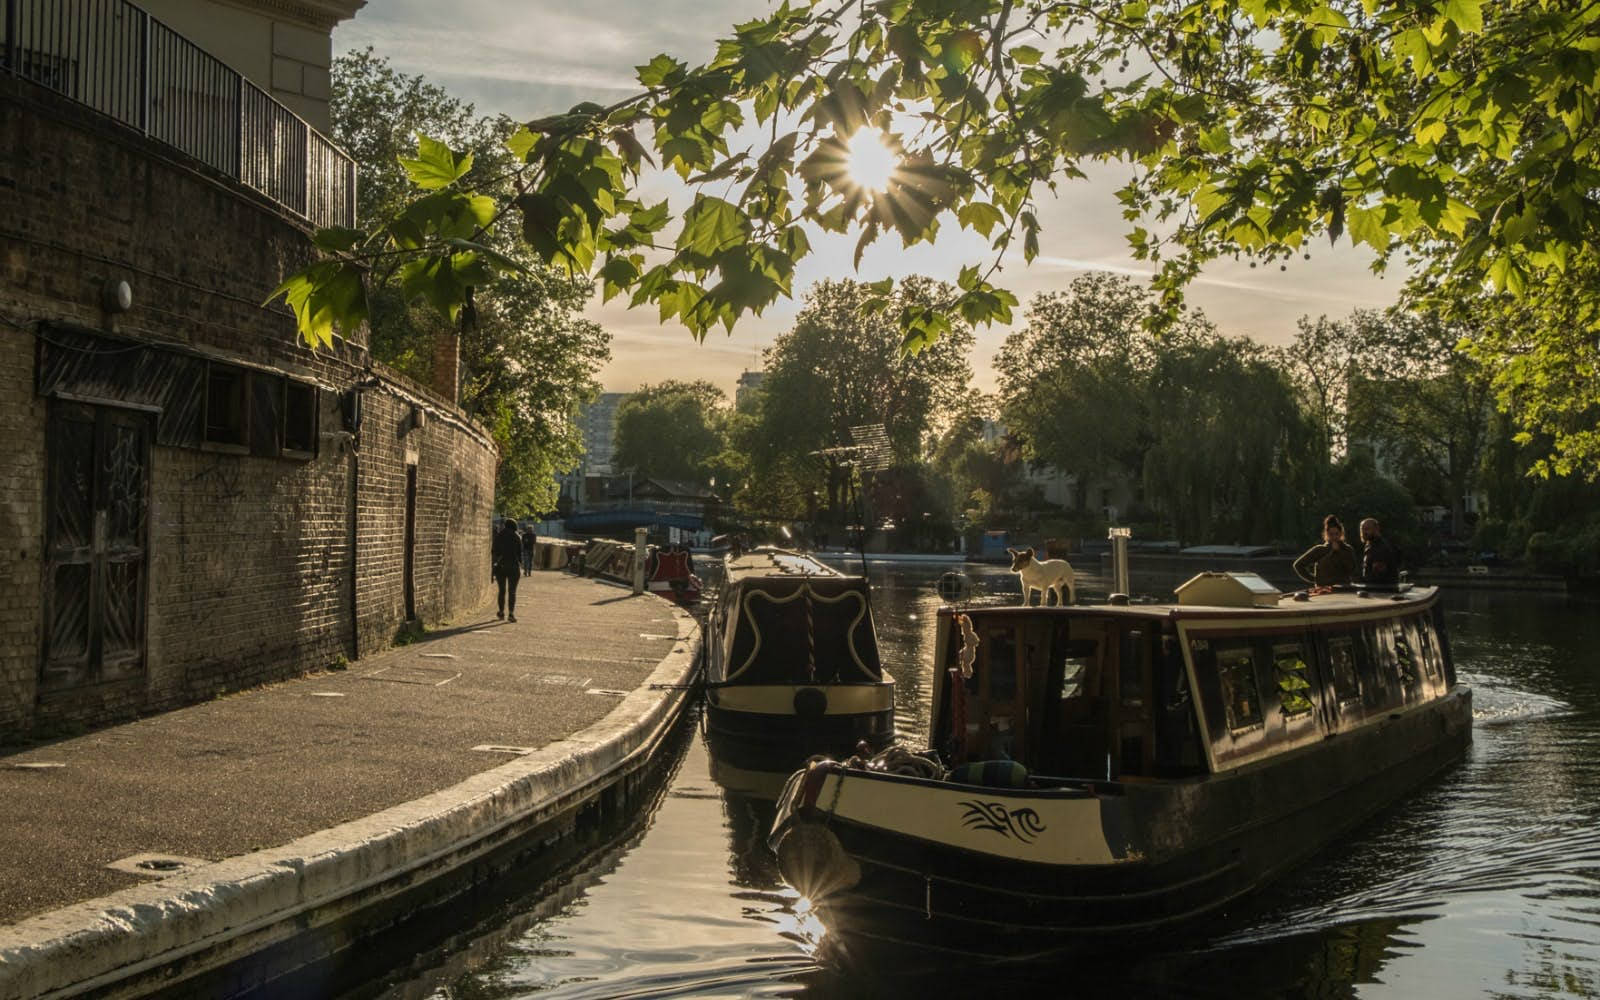 Highlights of Little Venice: Magical London image